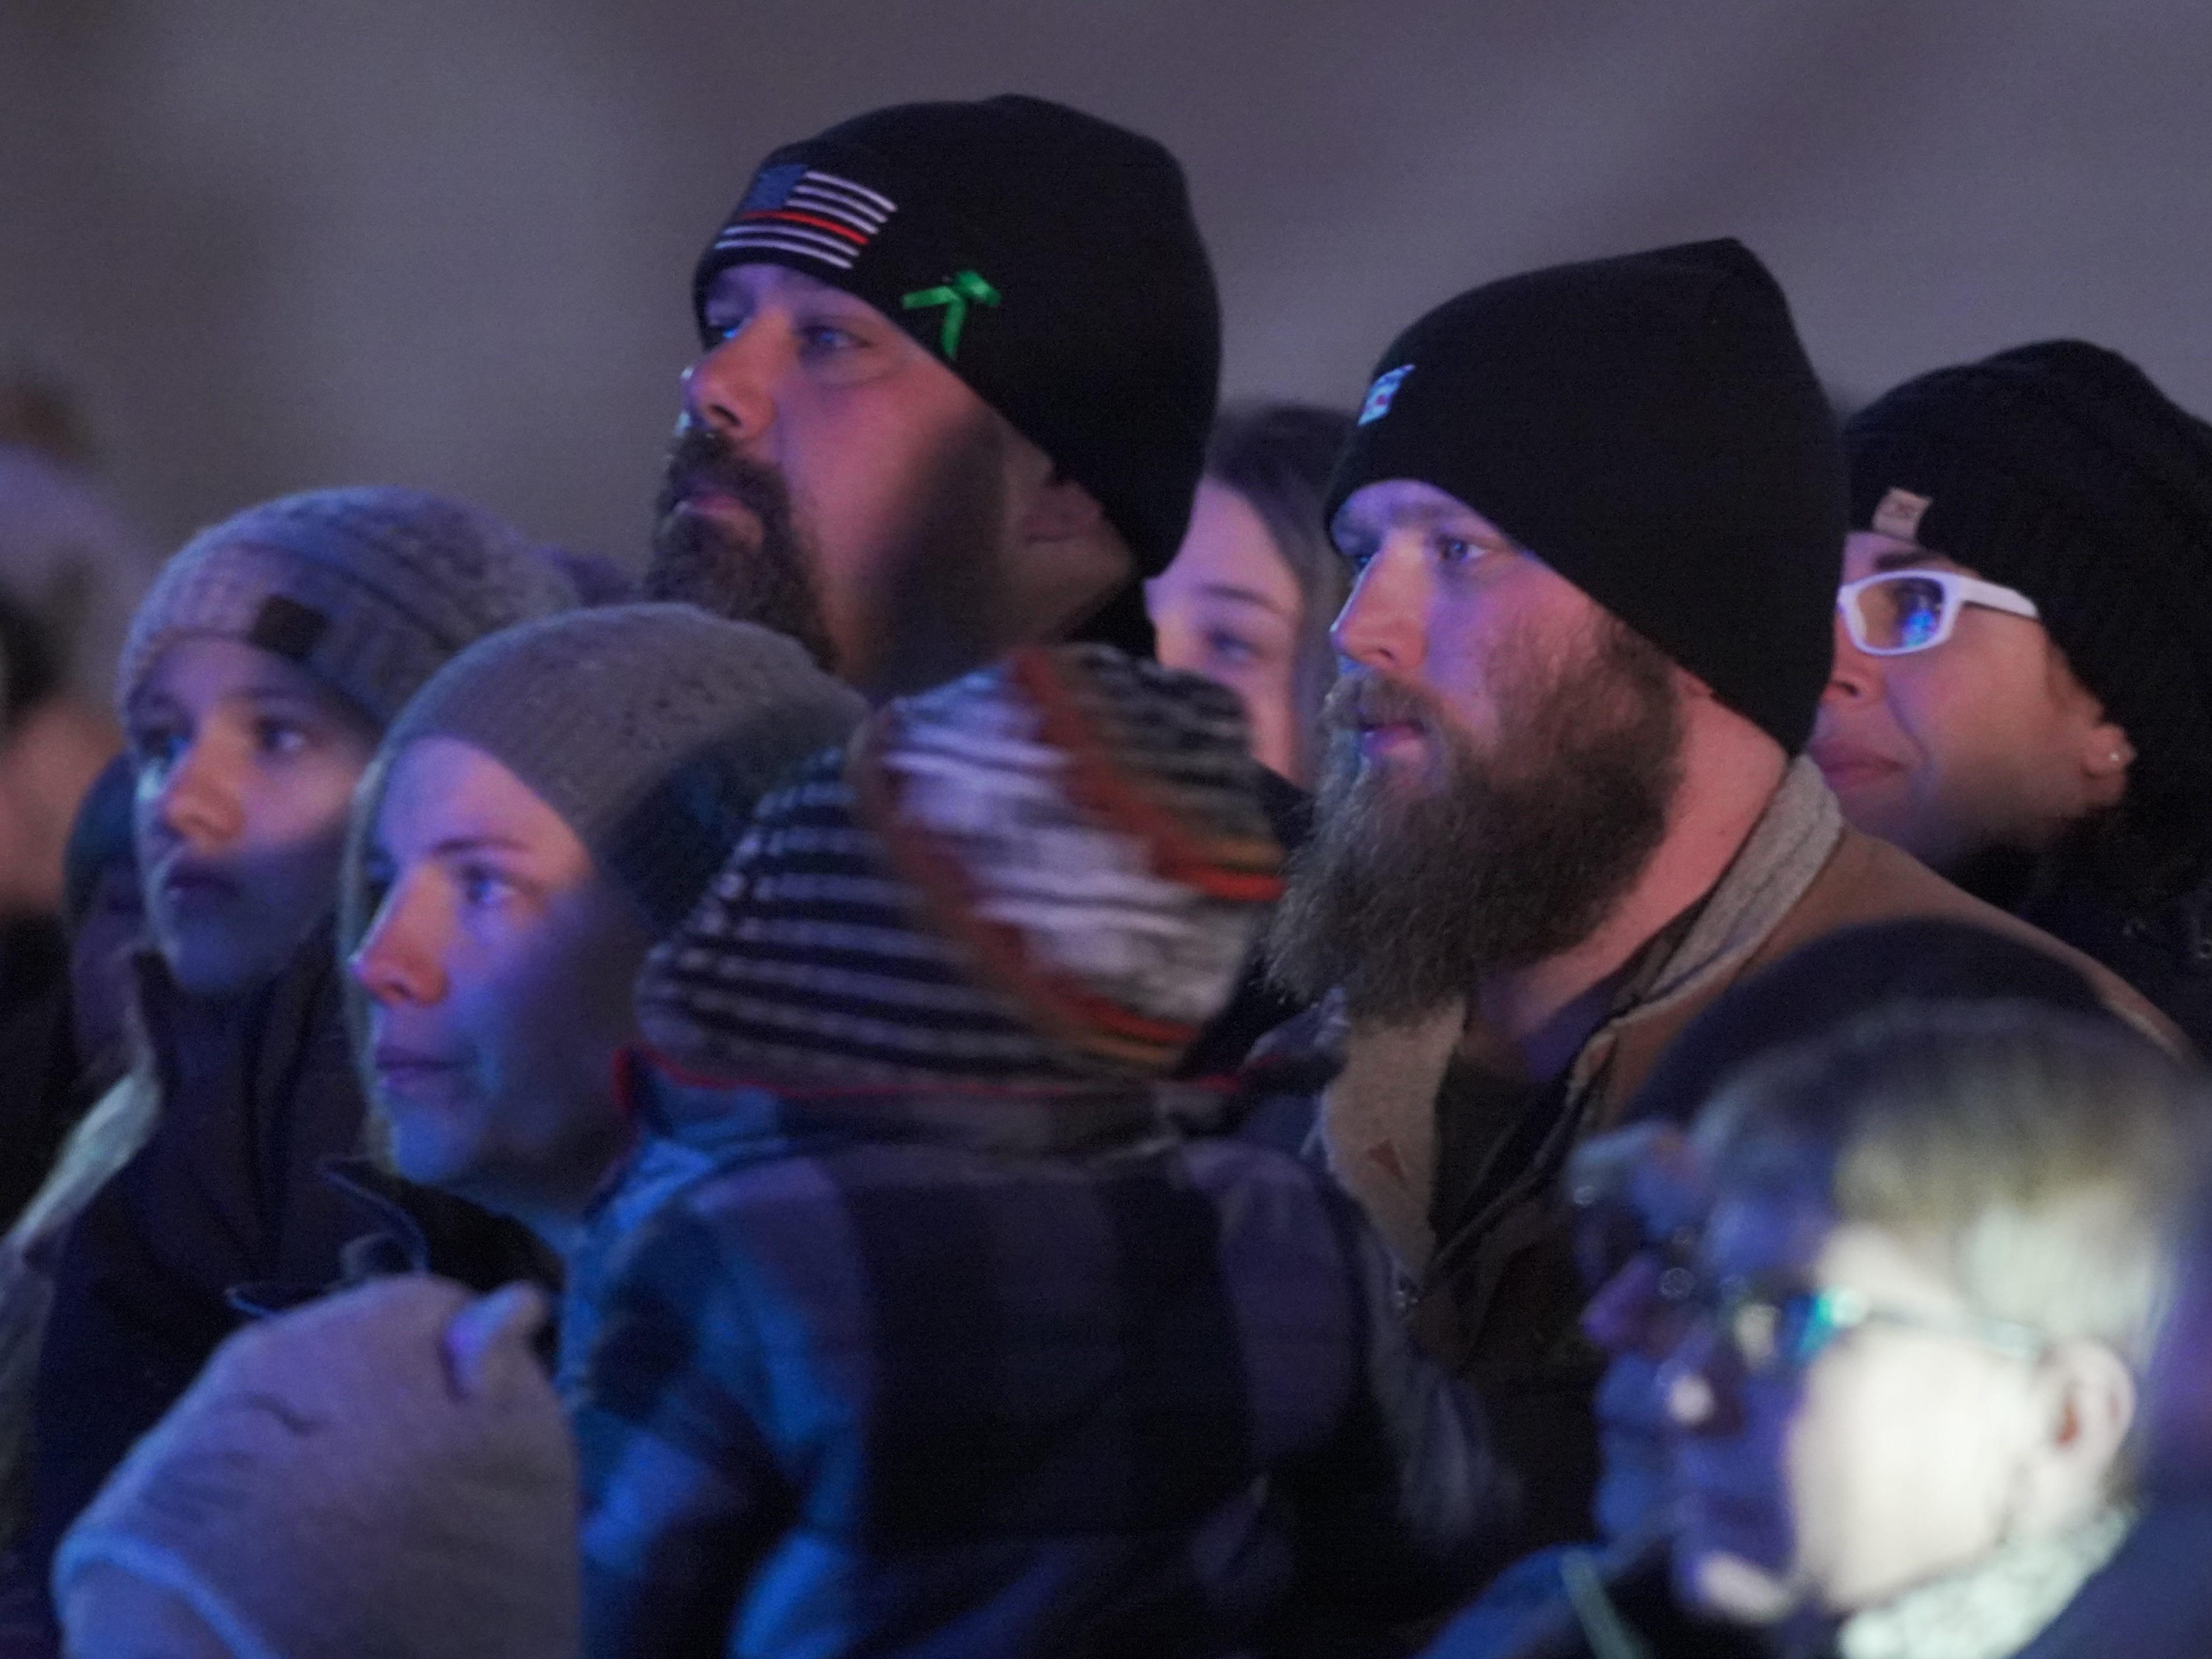 People listen during the Tree of Hope for Jayme Closs ceremony Wednesday, Dec. 12, 2018, outside of Riverview Middle School in Barron, Wisc. T'xer Zhon Kha/USA TODAY NETWORK-Wisconsin